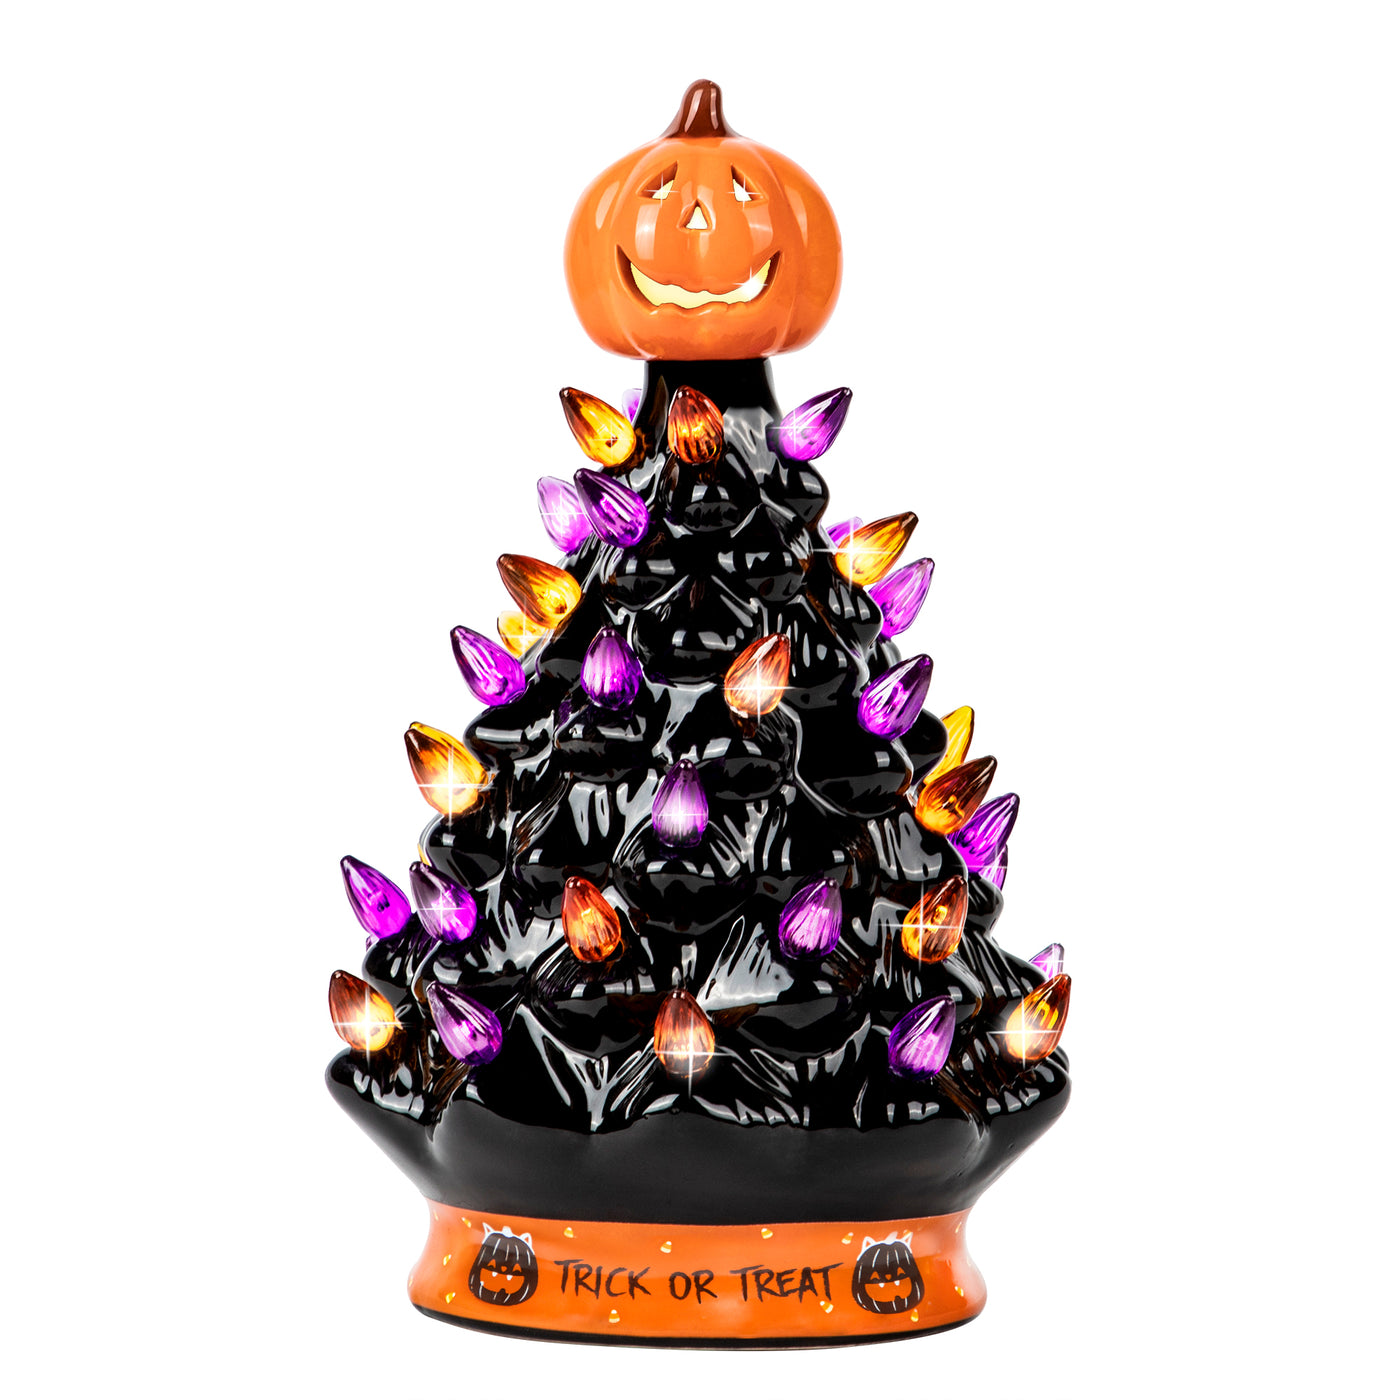 Rj Legend 9 Inch Ceramic Halloween Tree Decoration For Indoor Outd